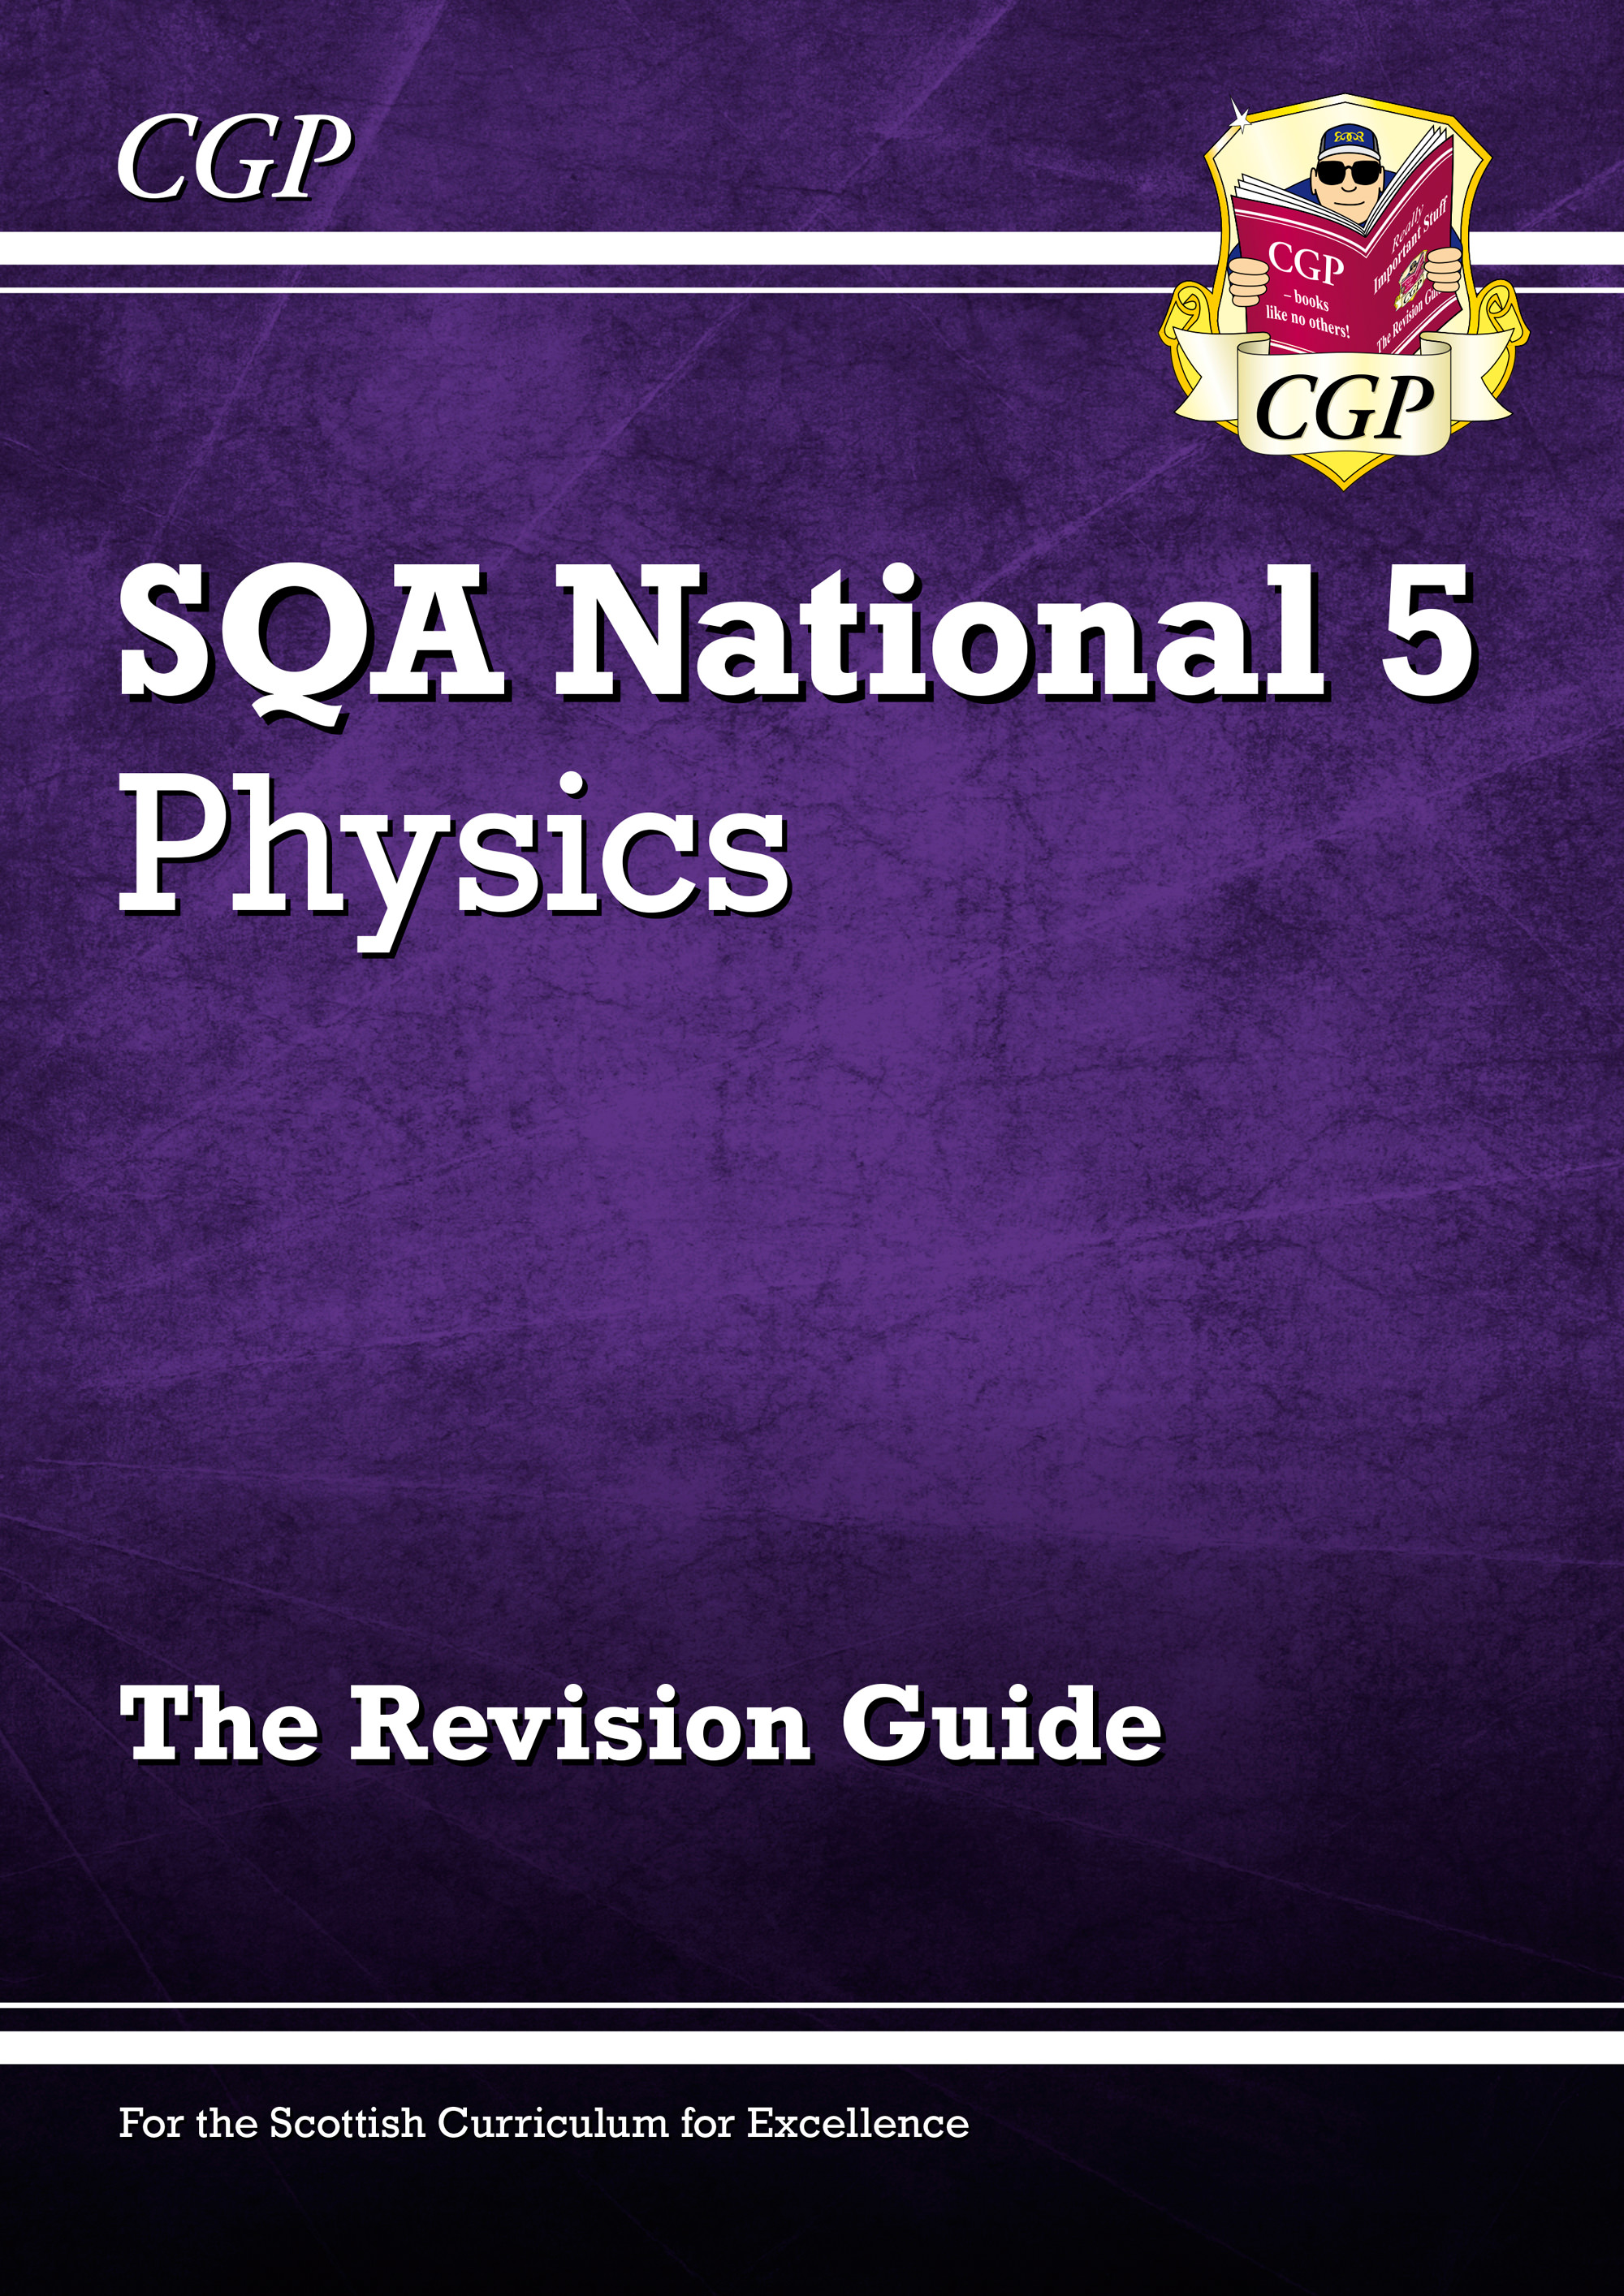 PZR41DK - New National 5 Physics: SQA Revision Guide